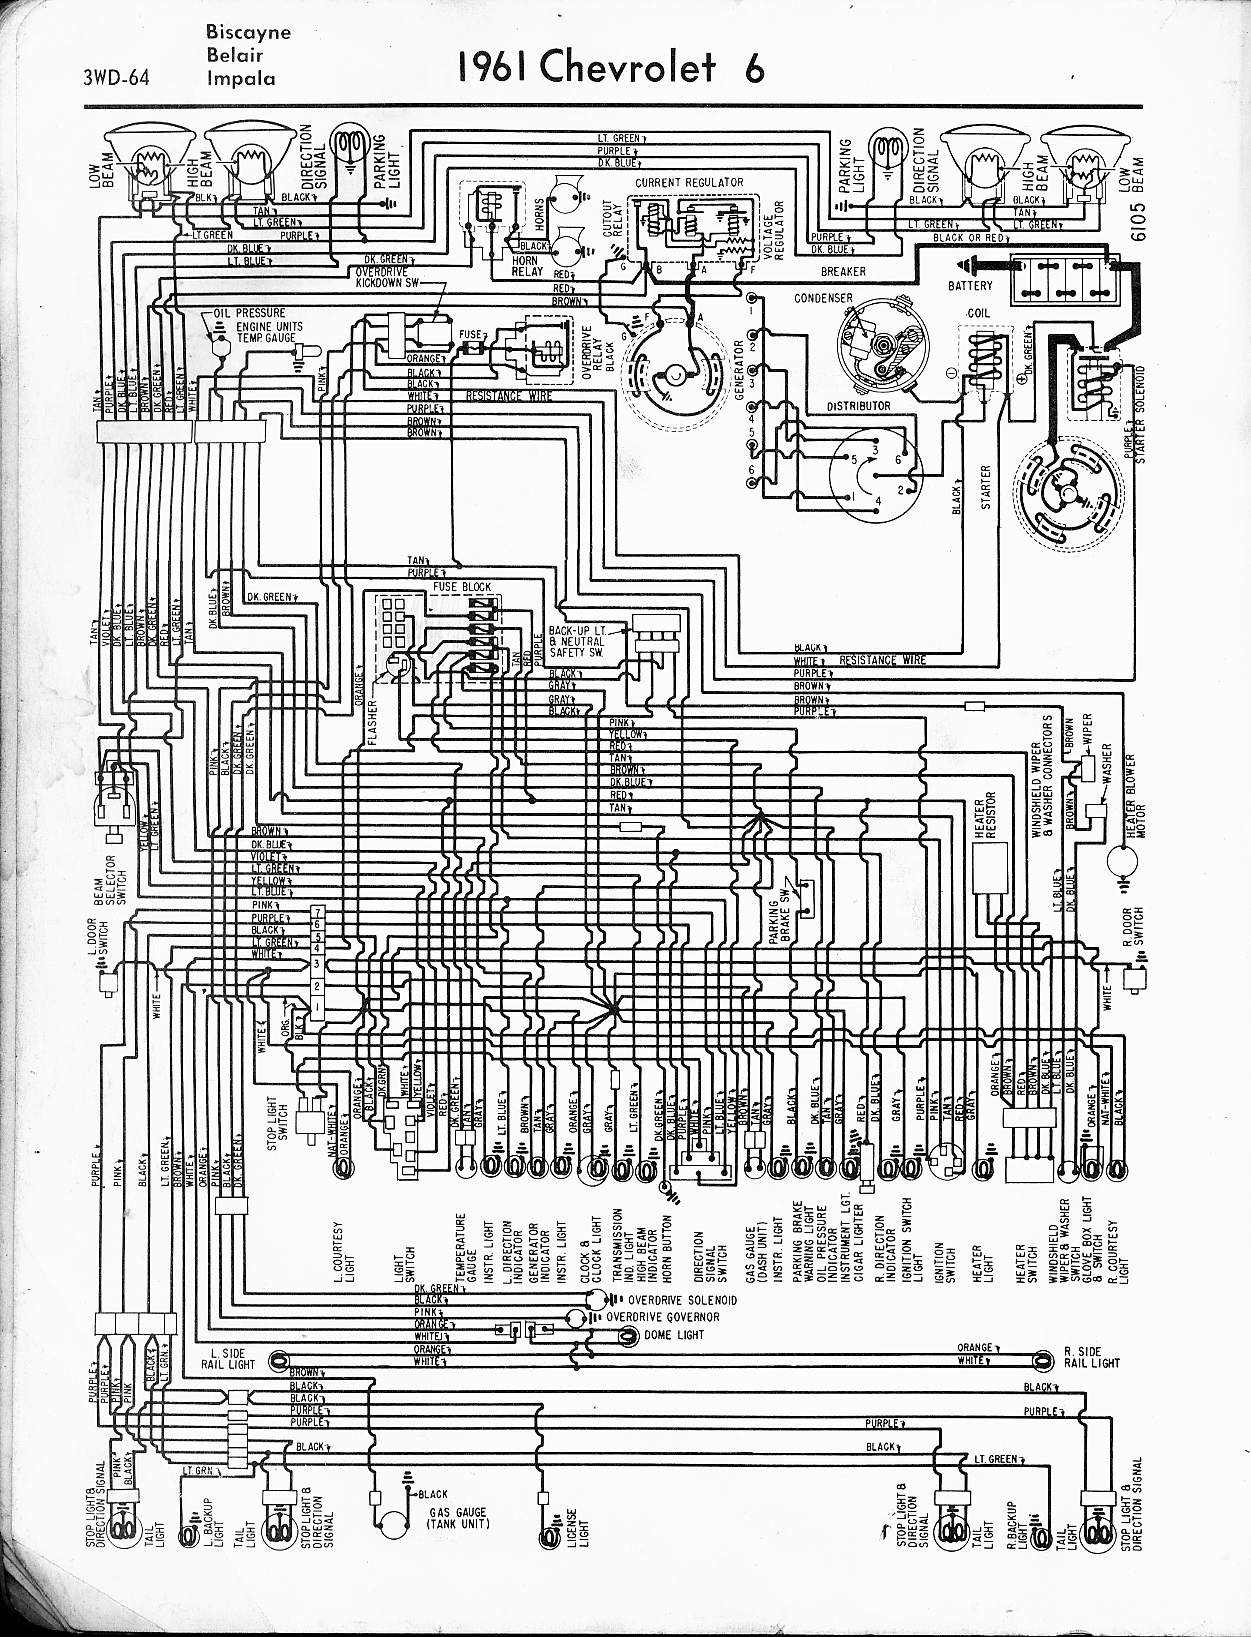 Mwirechev Wd on 1957 Chevy Truck Wiring Diagram